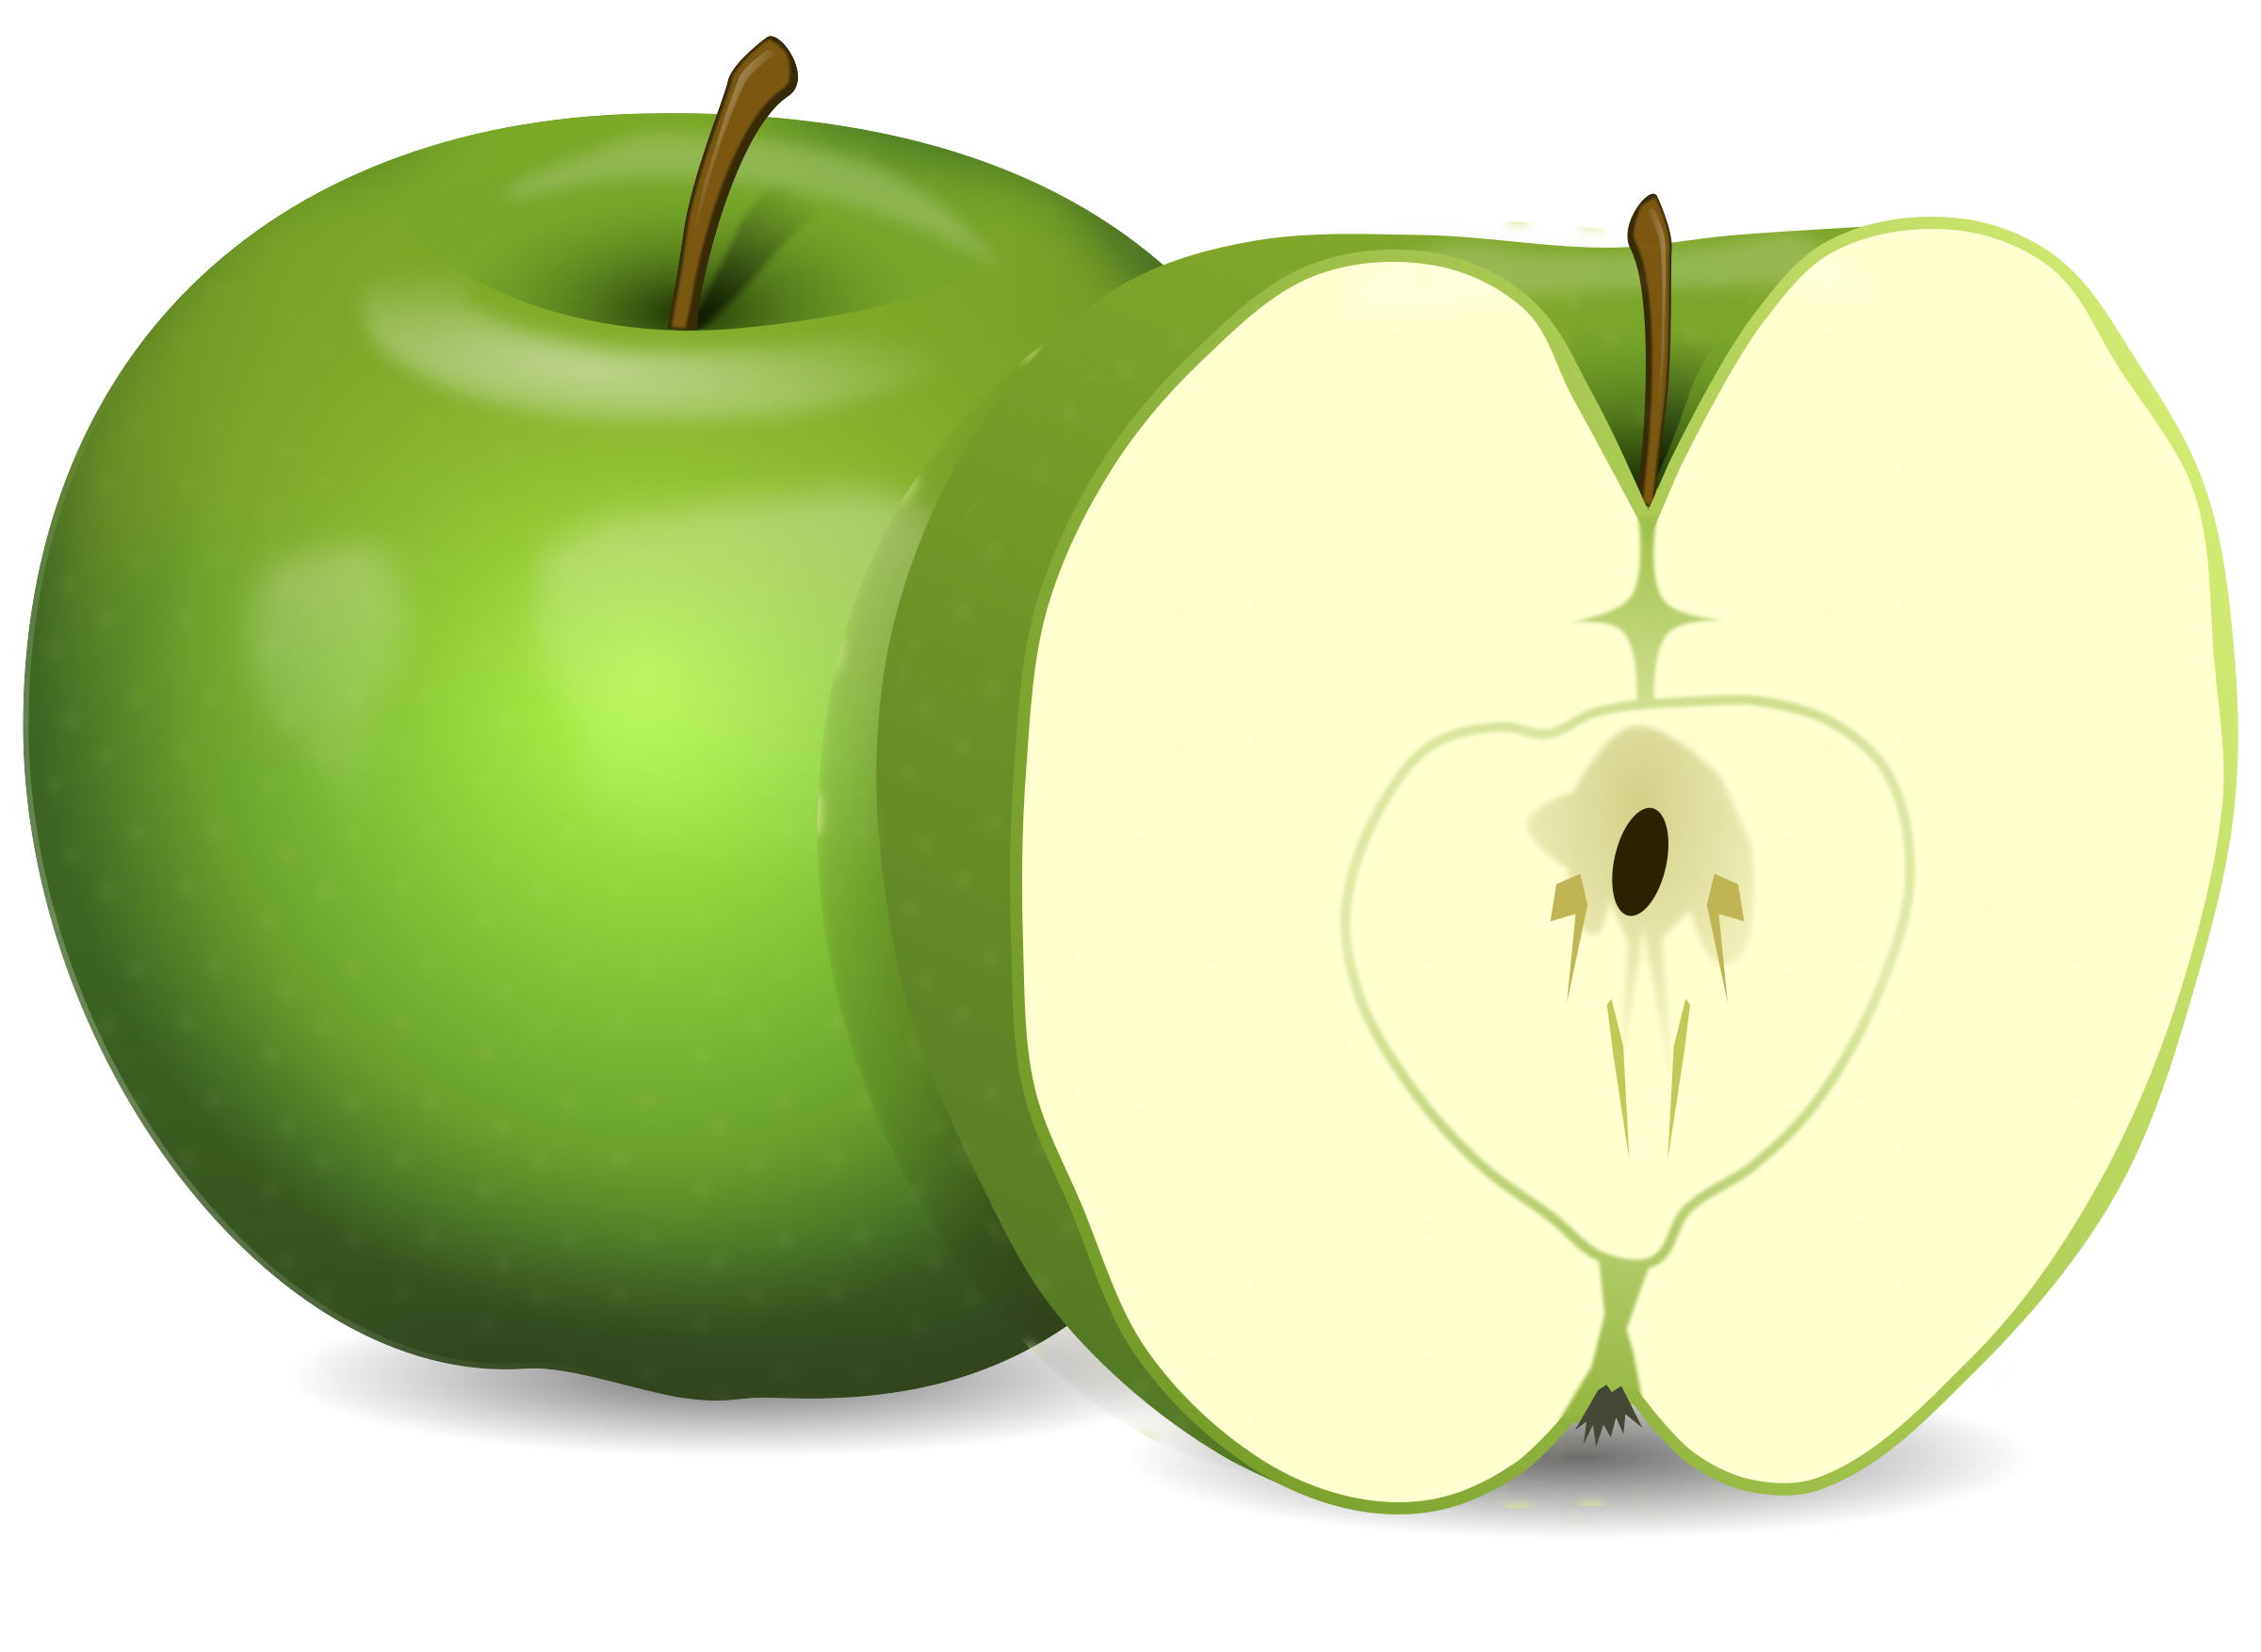 transparent download Big image png. Green apples clipart.